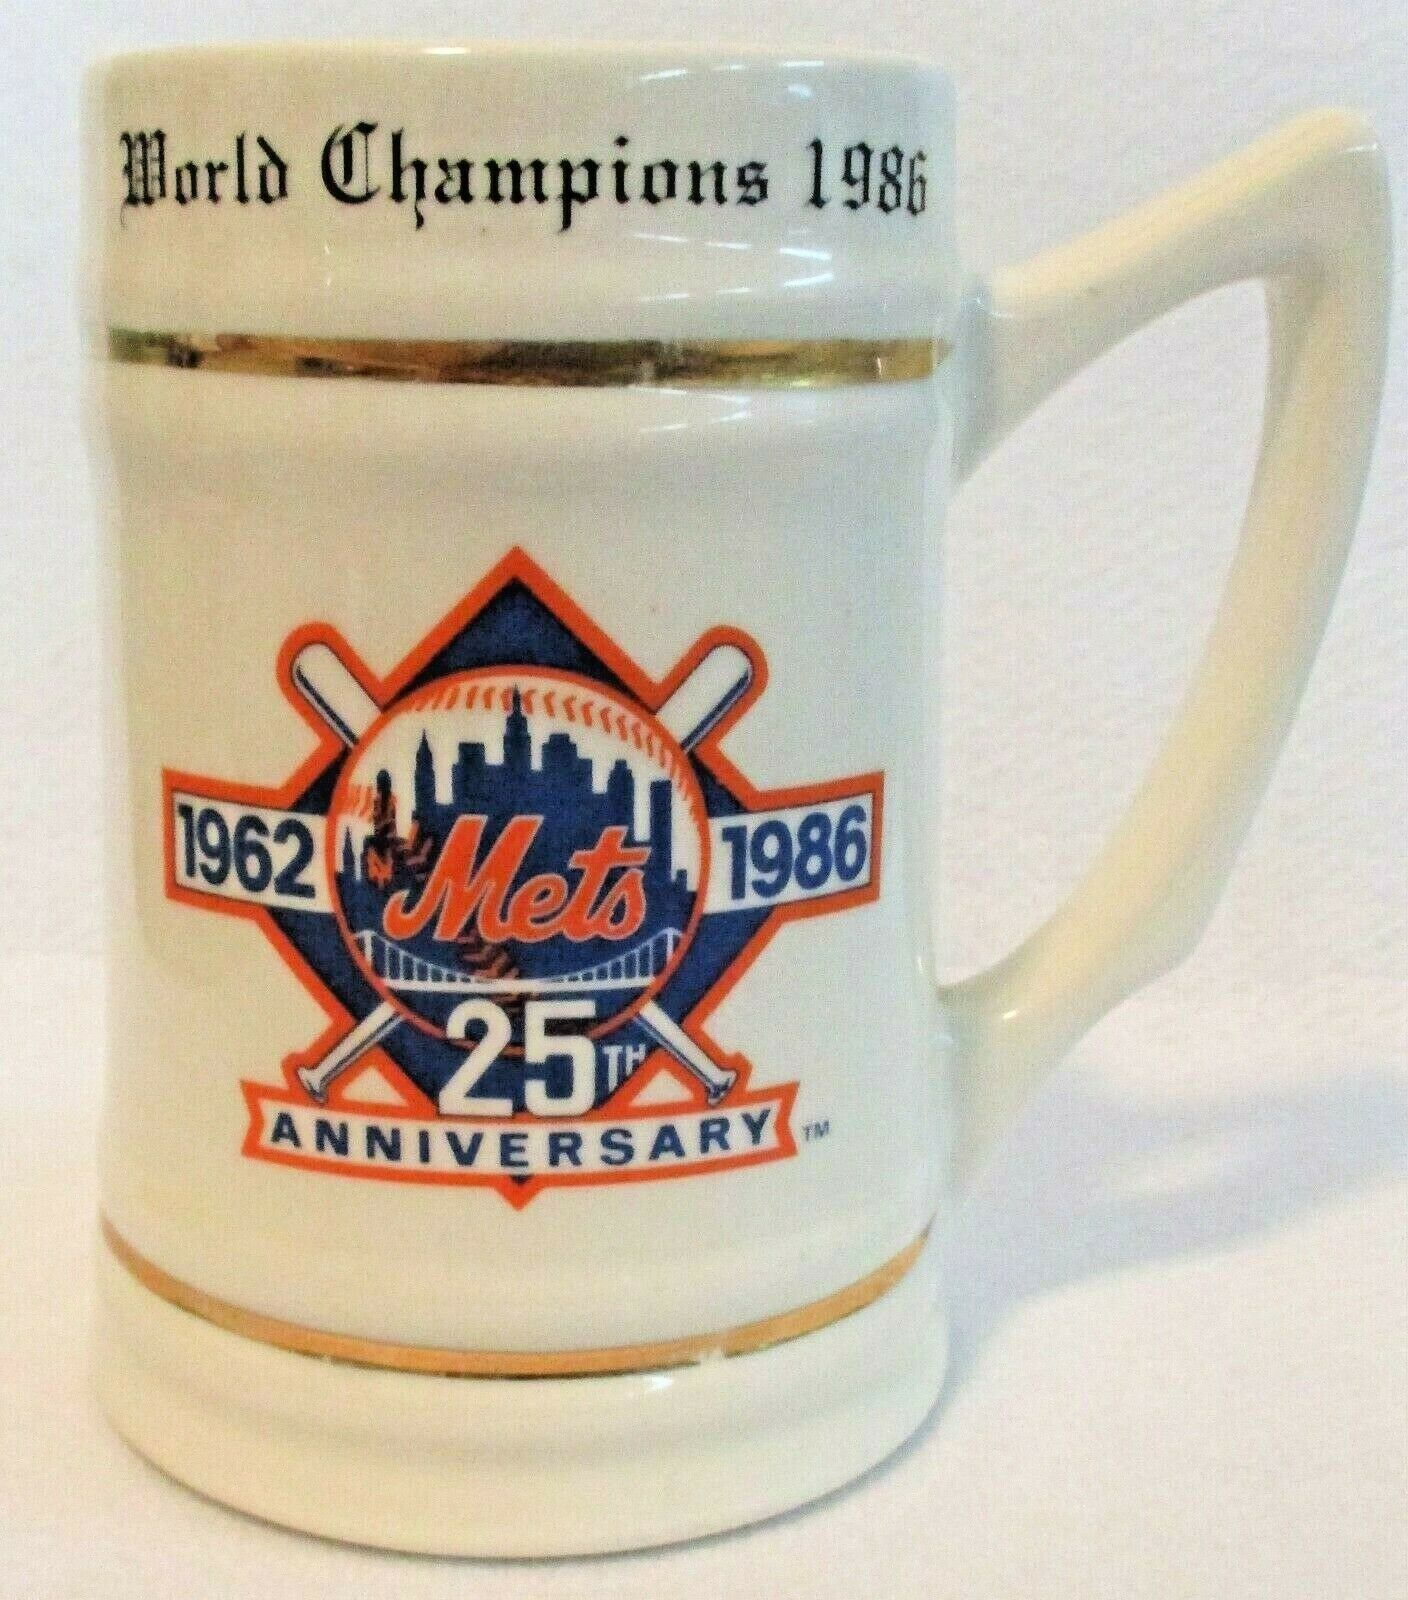 New York Mets World Series Champions 1986 Collectible Stein/Mug